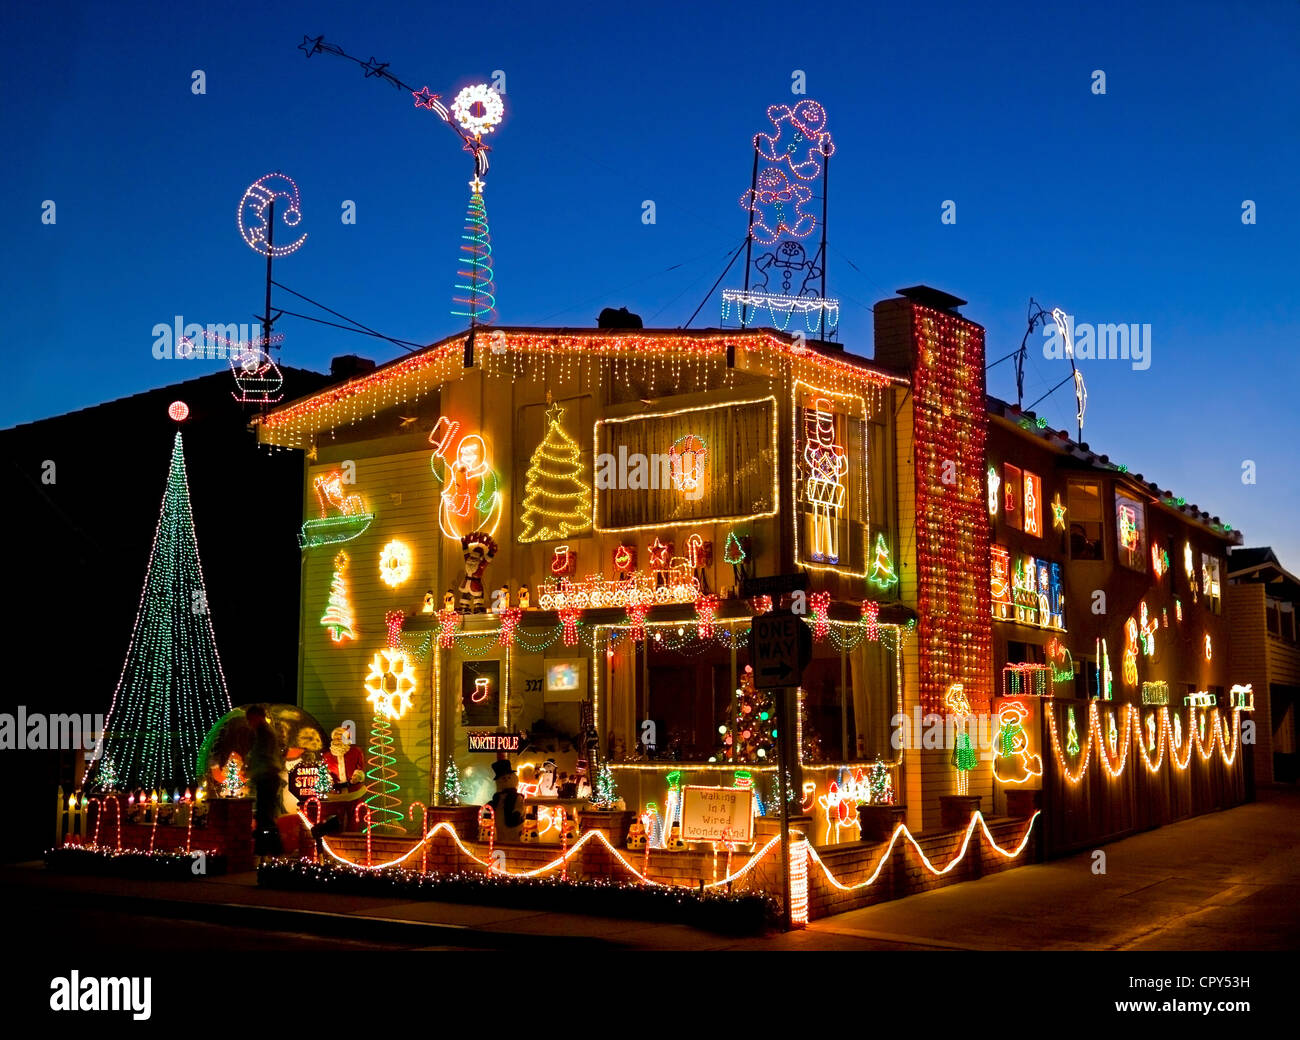 Many homes on Balboa Island are creatively and colorfully decorated during the Christmas holidays in Newport Beach, - Stock Image